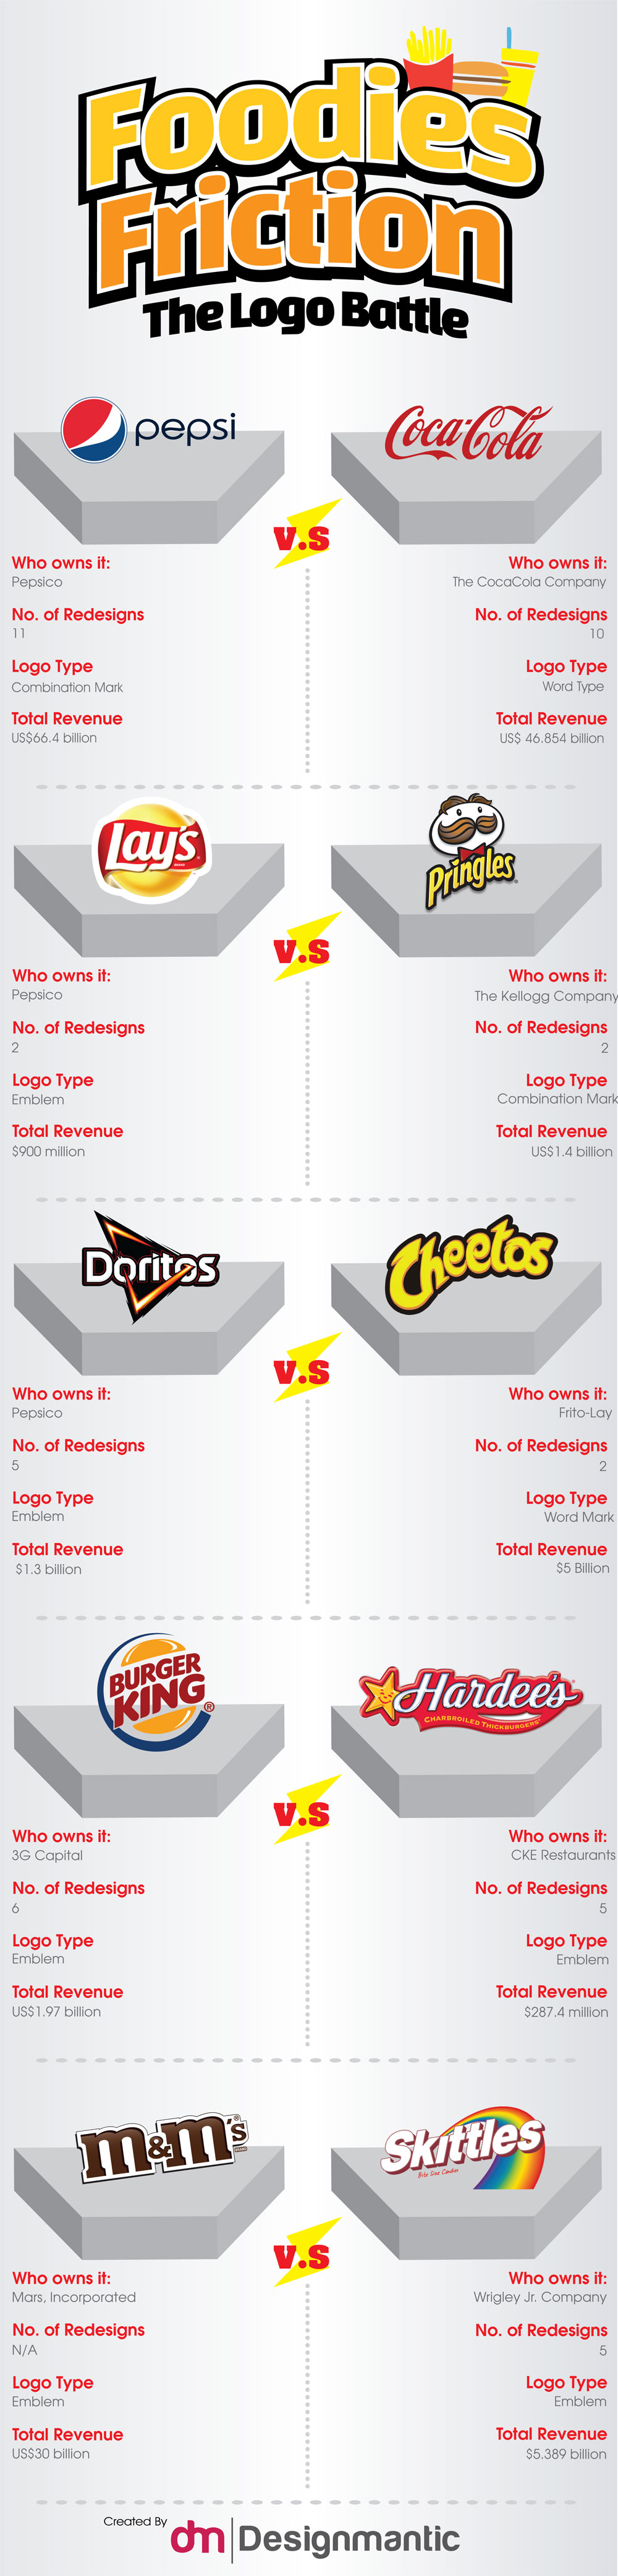 [INFOGRAPHIC]: Foodies Friction - The Logo Battle!